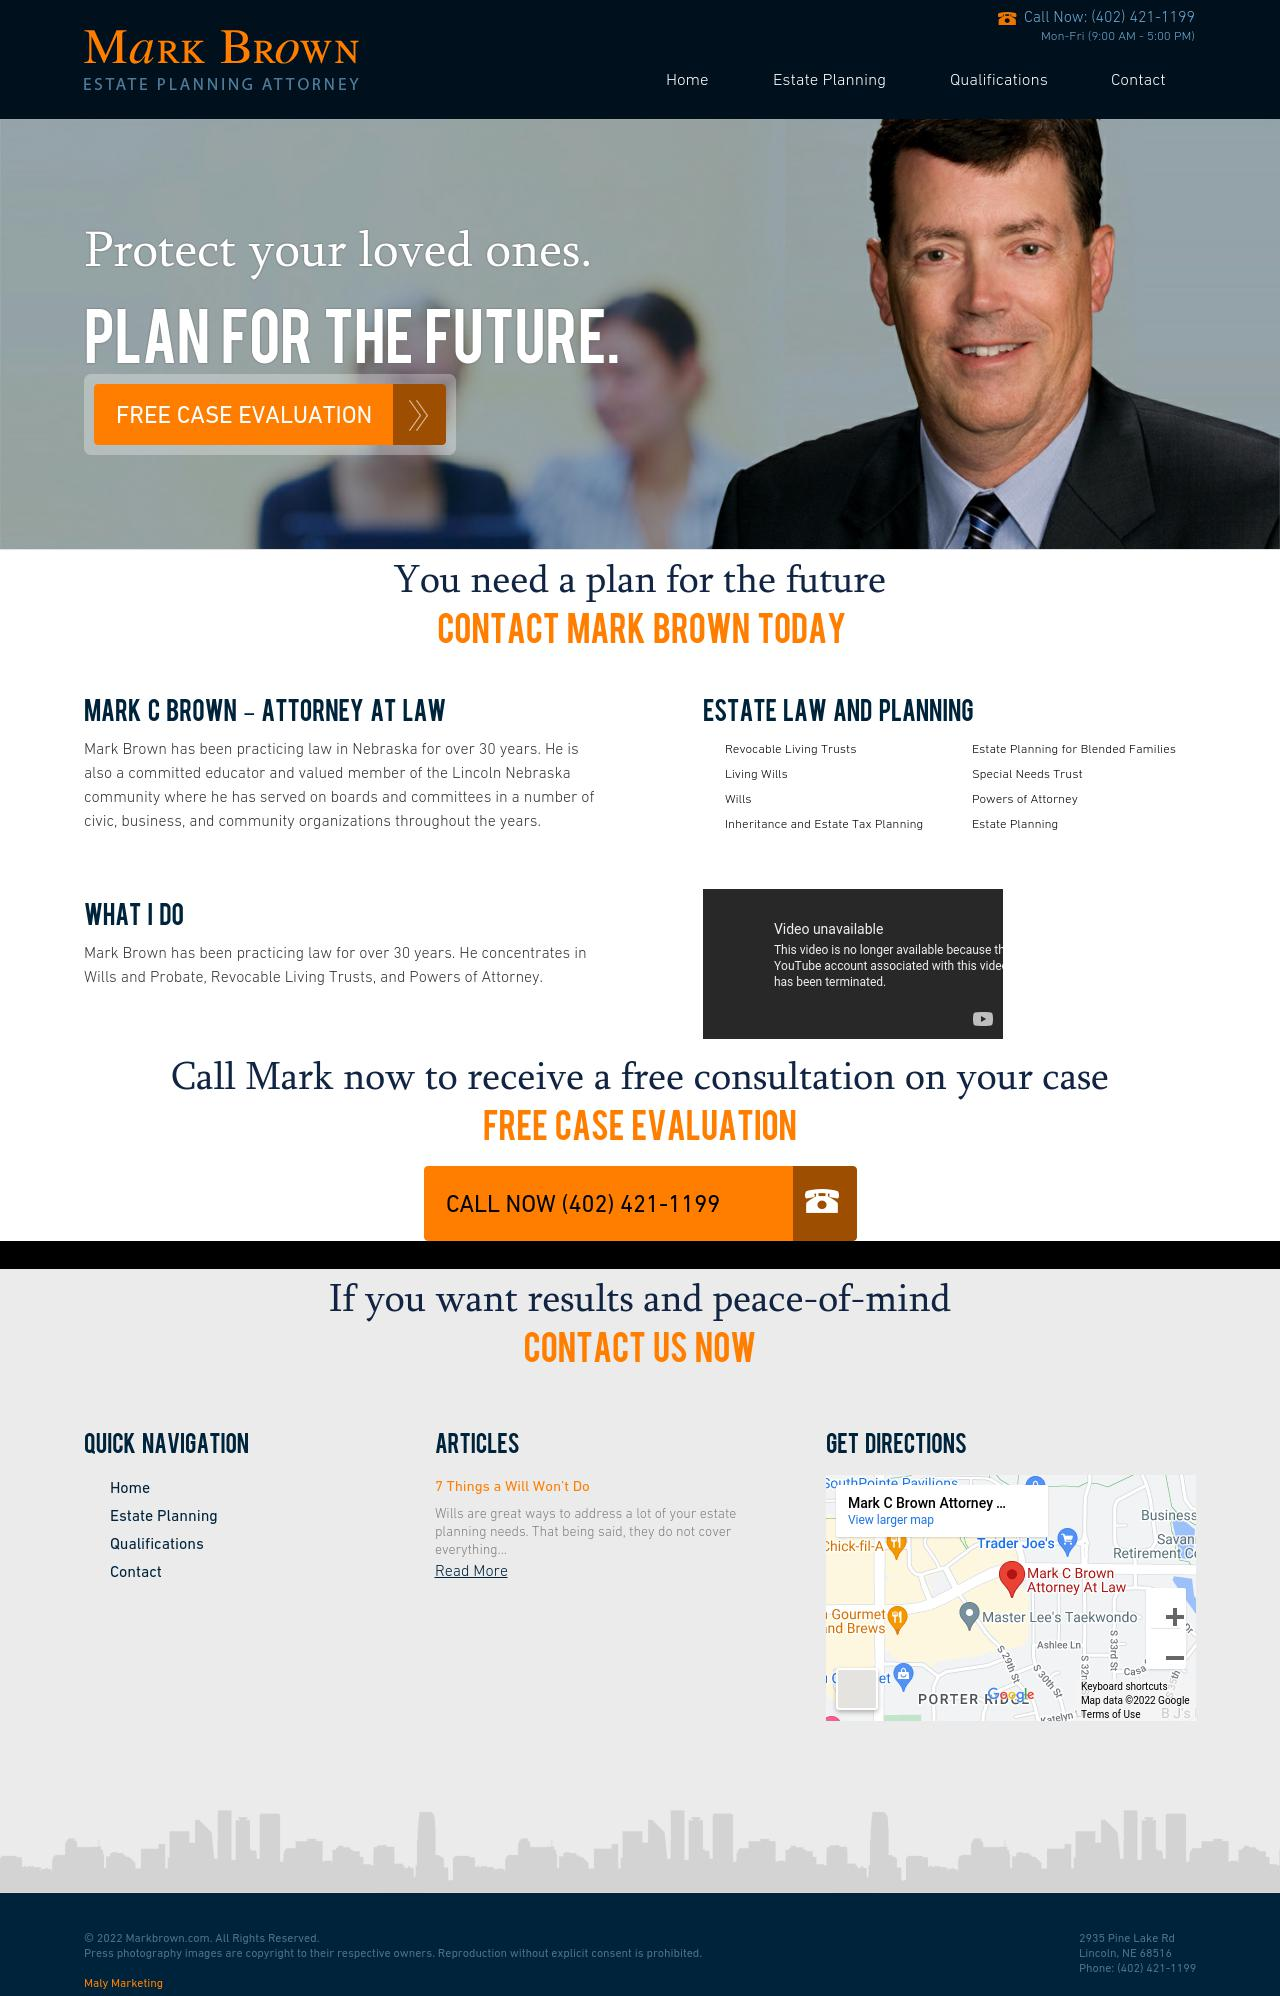 Brown Mark C. Attorney - Lincoln NE Lawyers